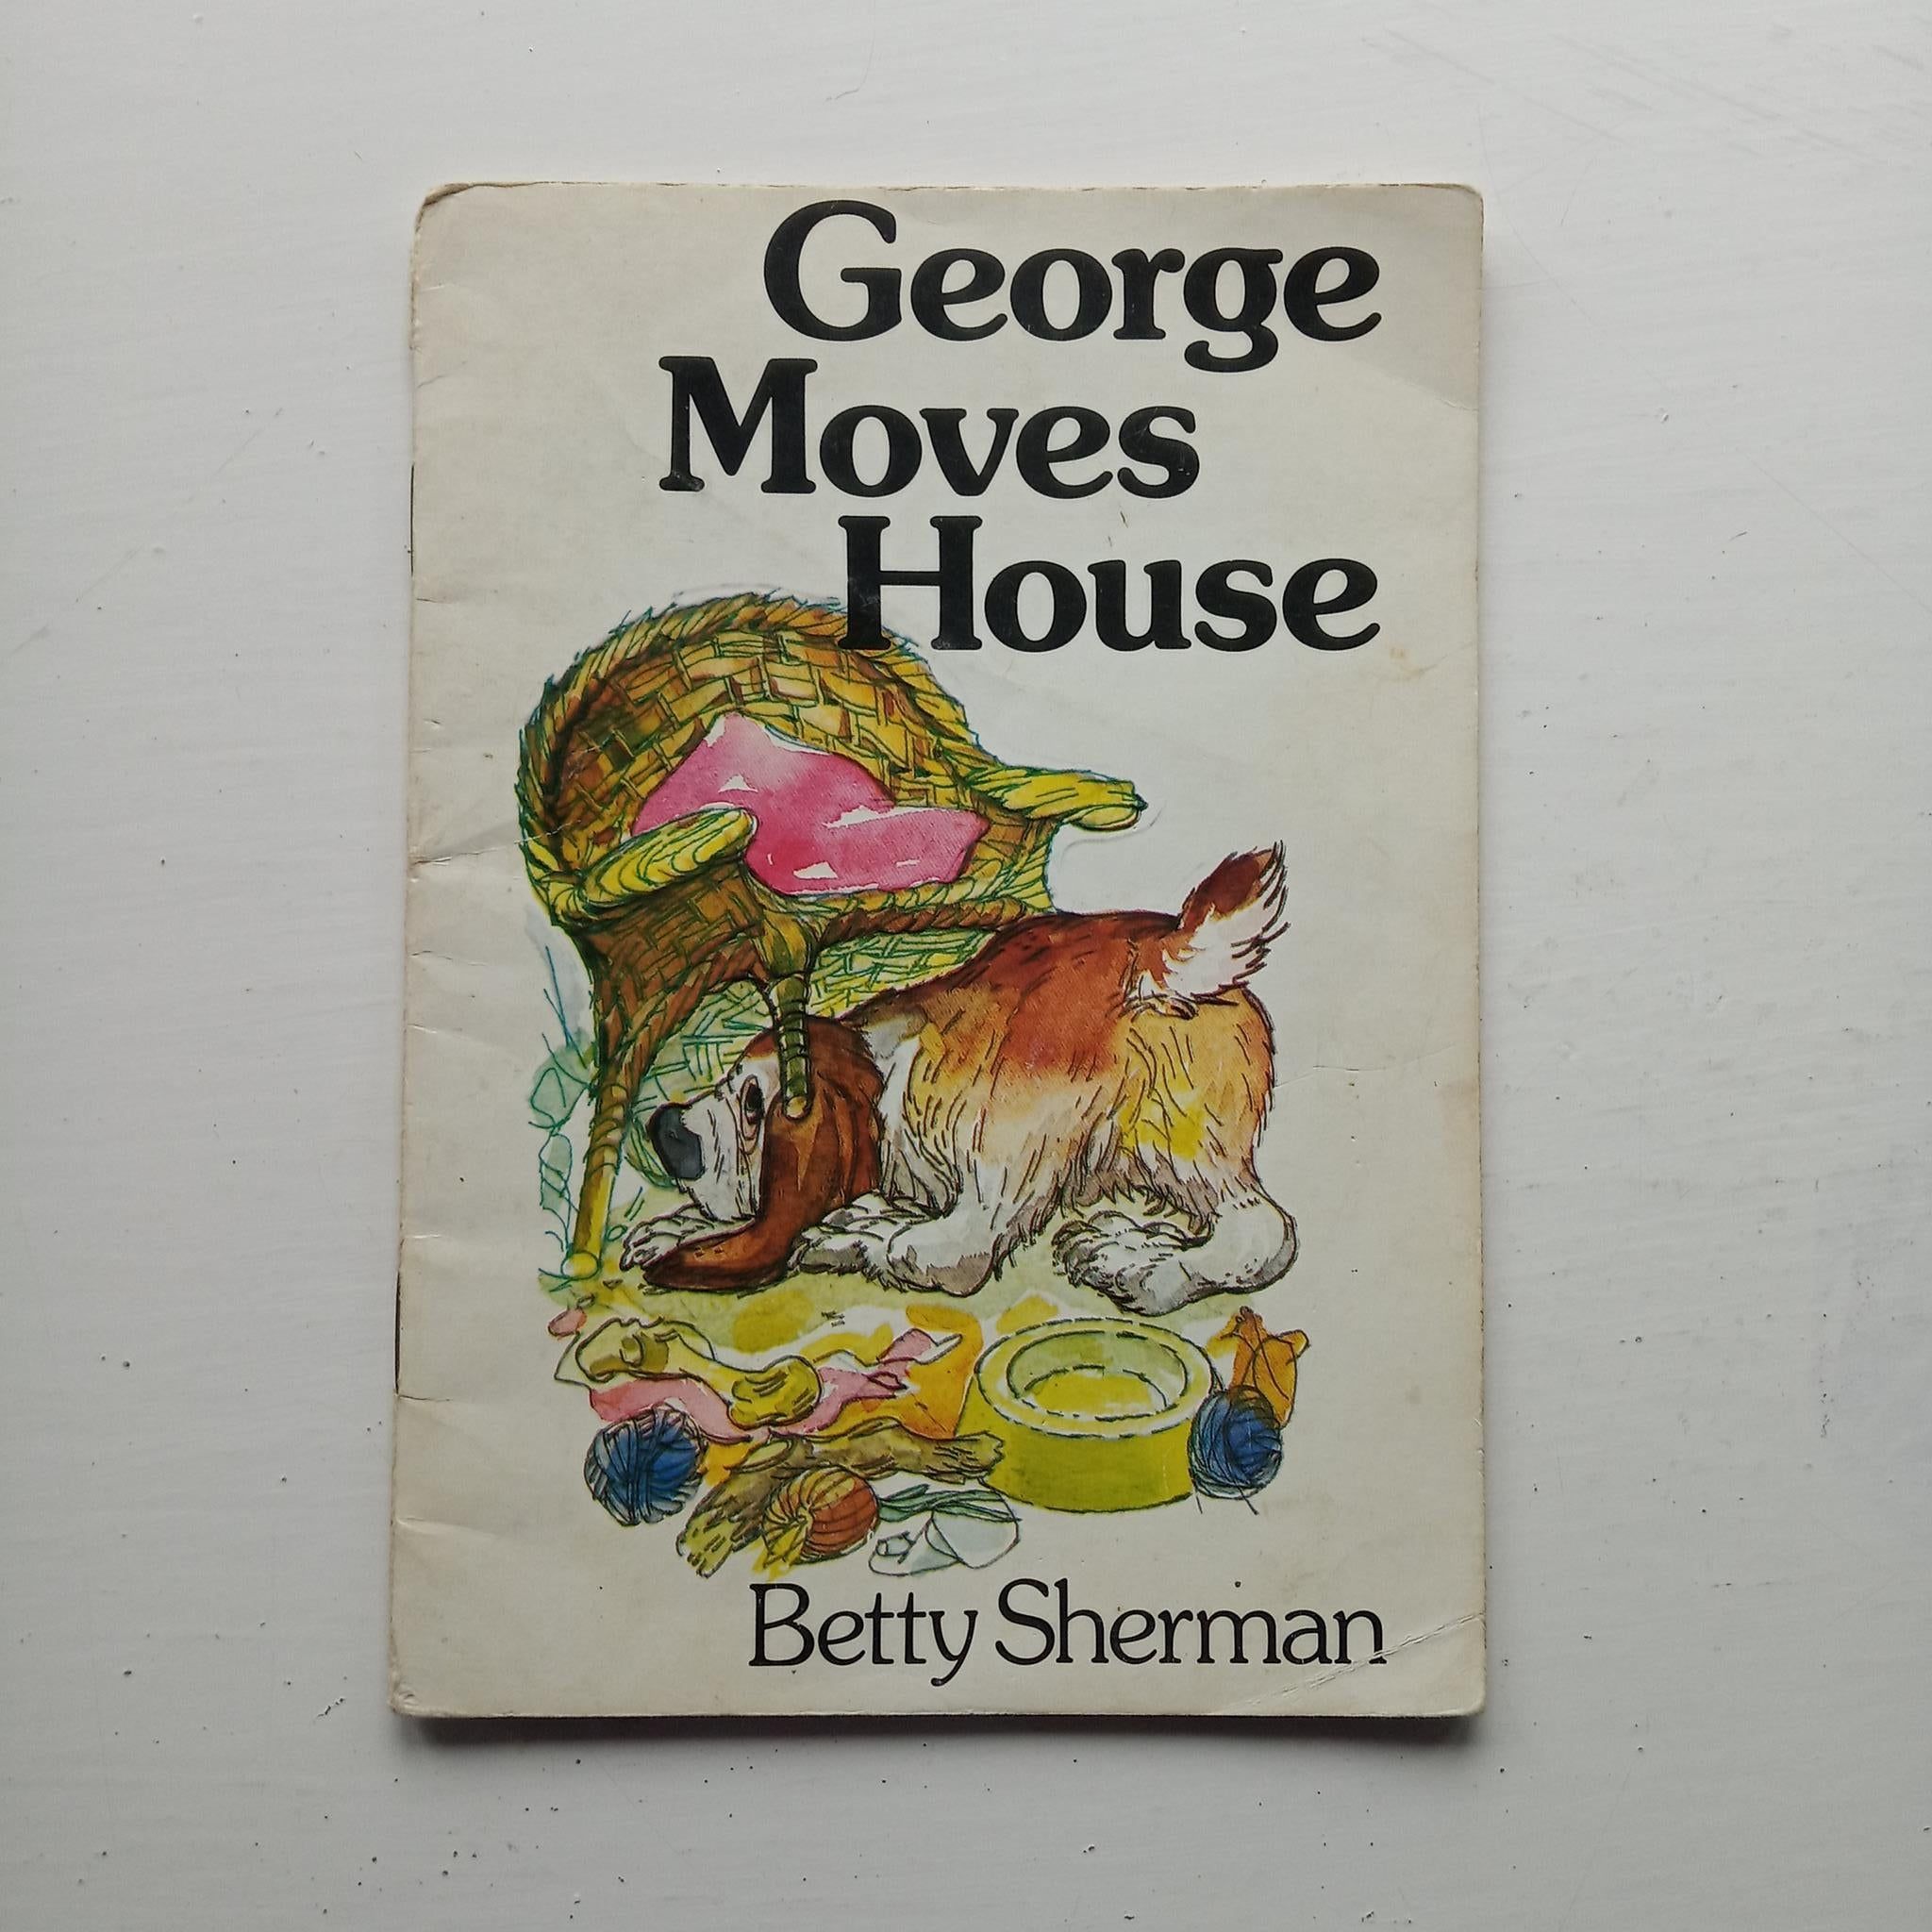 George Moves House by Betty Sherman